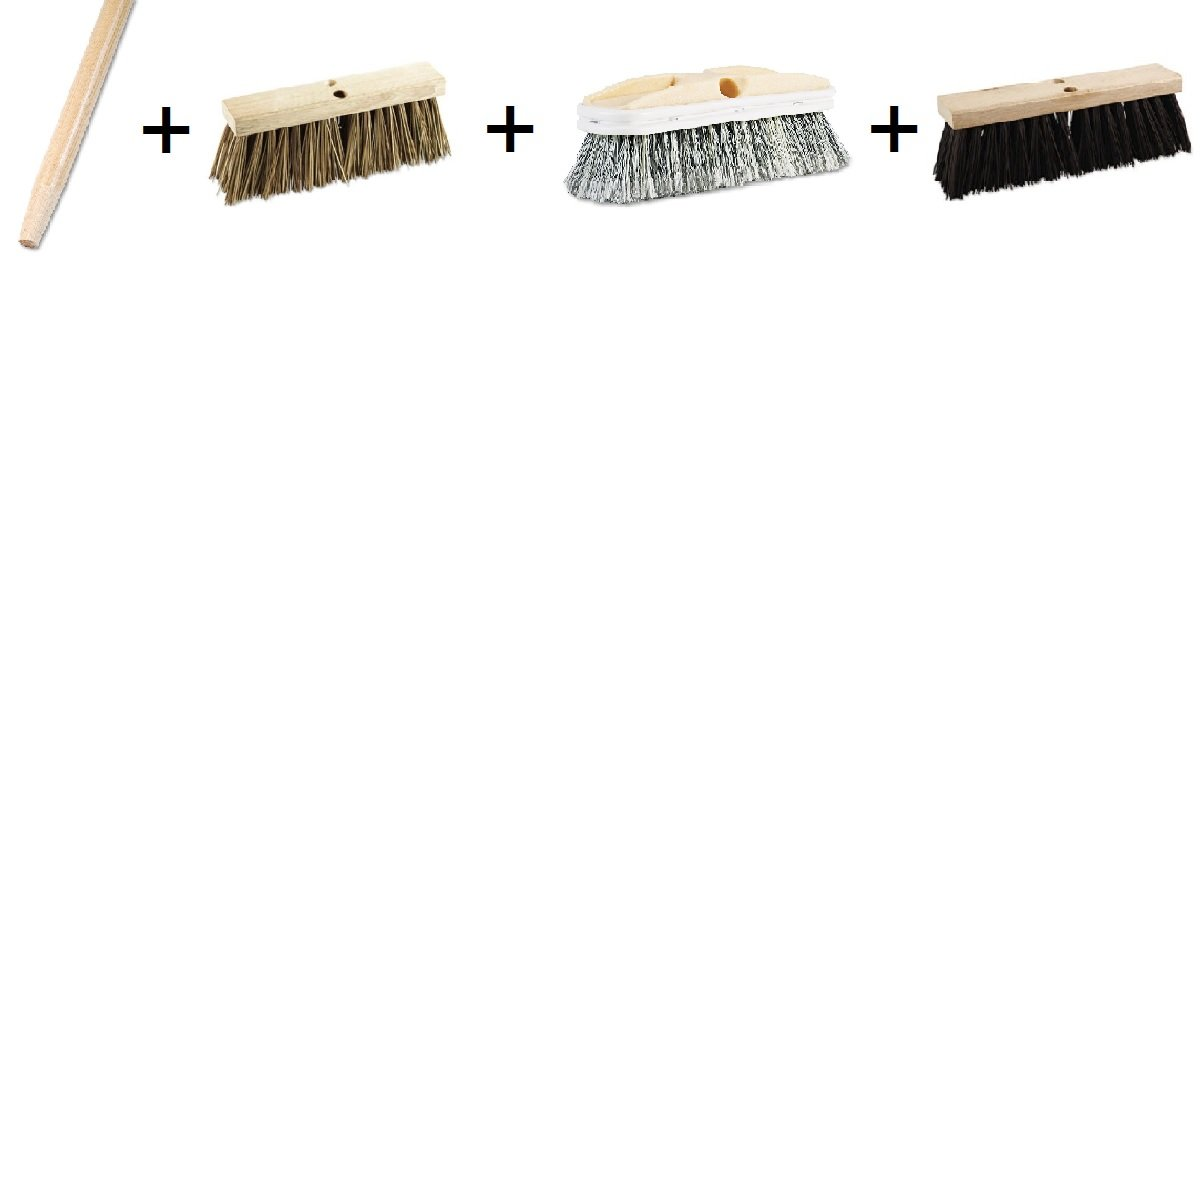 60'' Handle with 3 Brush Set - Tapered End Broom Handle, Lacquered Hardwood, 1 1/8 Dia. x 60 Long, Polystyrene Vehicle Brush w/Vinyl Bumper, 2 1/2 Bristles, 10'' Brush, Street Broom Head, Polypropylene